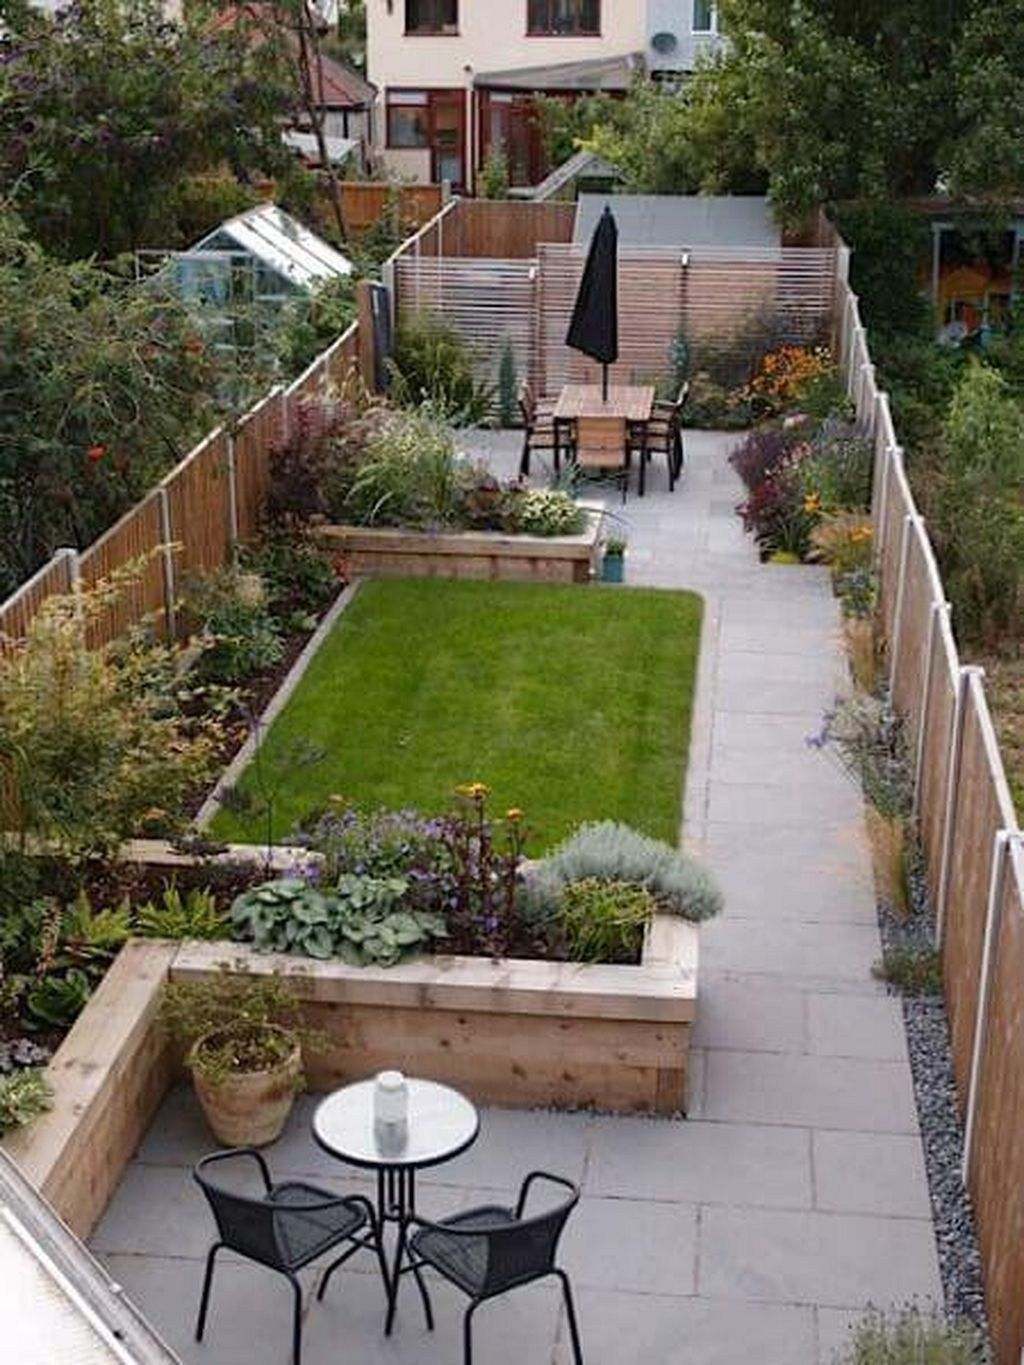 Fullsize Of Cool Ideas For Backyards